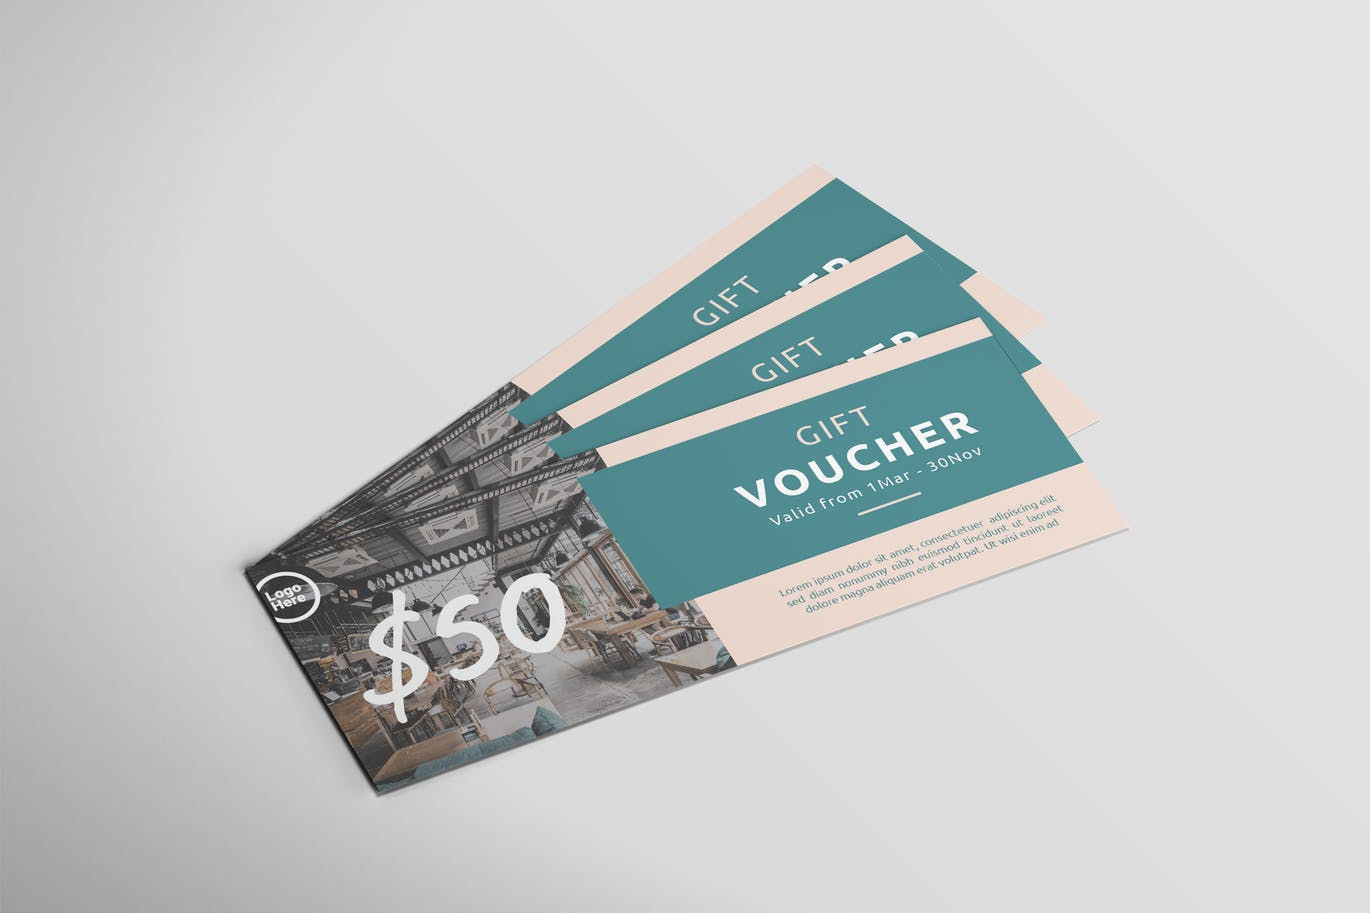 Restaurant Gift Card - Voucher Design